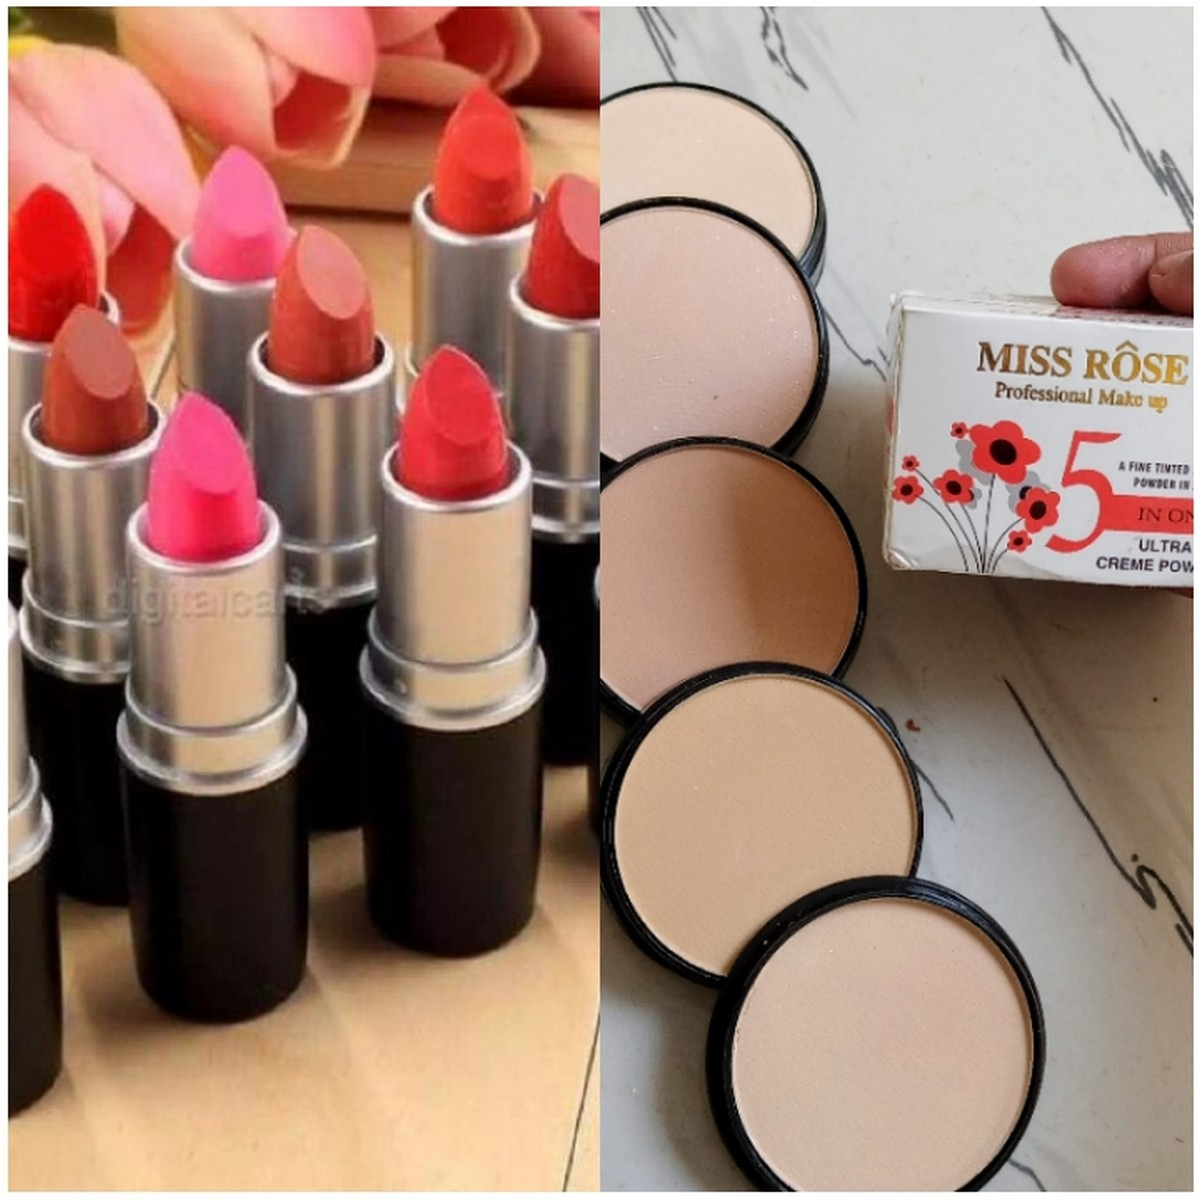 Pack of 6 matte lipstick and miss rose 5 in 1 Facepowder